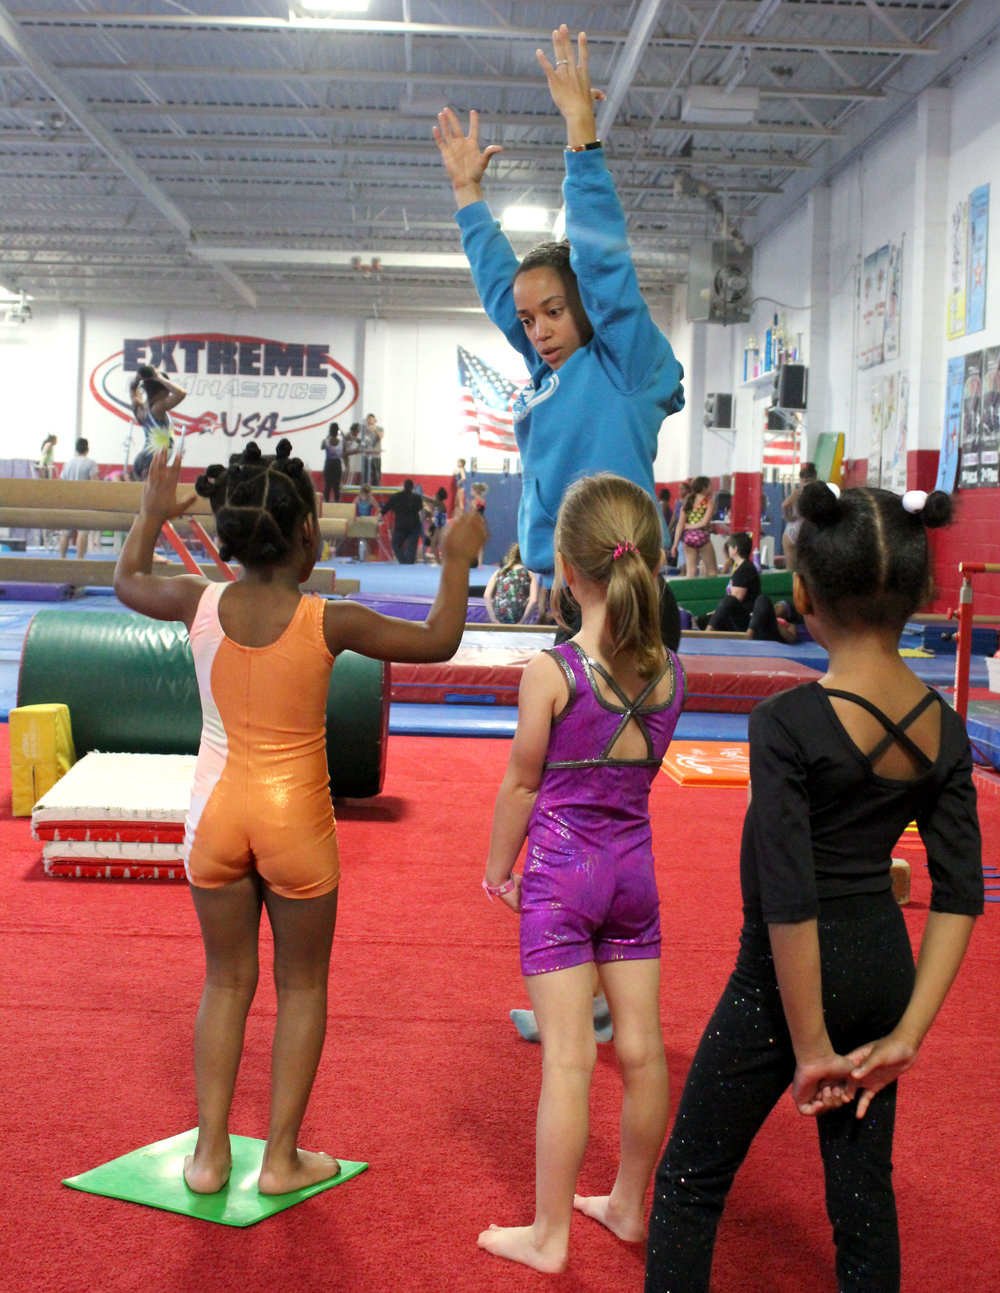 Reach for the sky! Thursday, October 18, 2018 was just another hard days work at Extreme Gymnastics USA. Gymnast instructor Lisa teaching the future great gymnast.